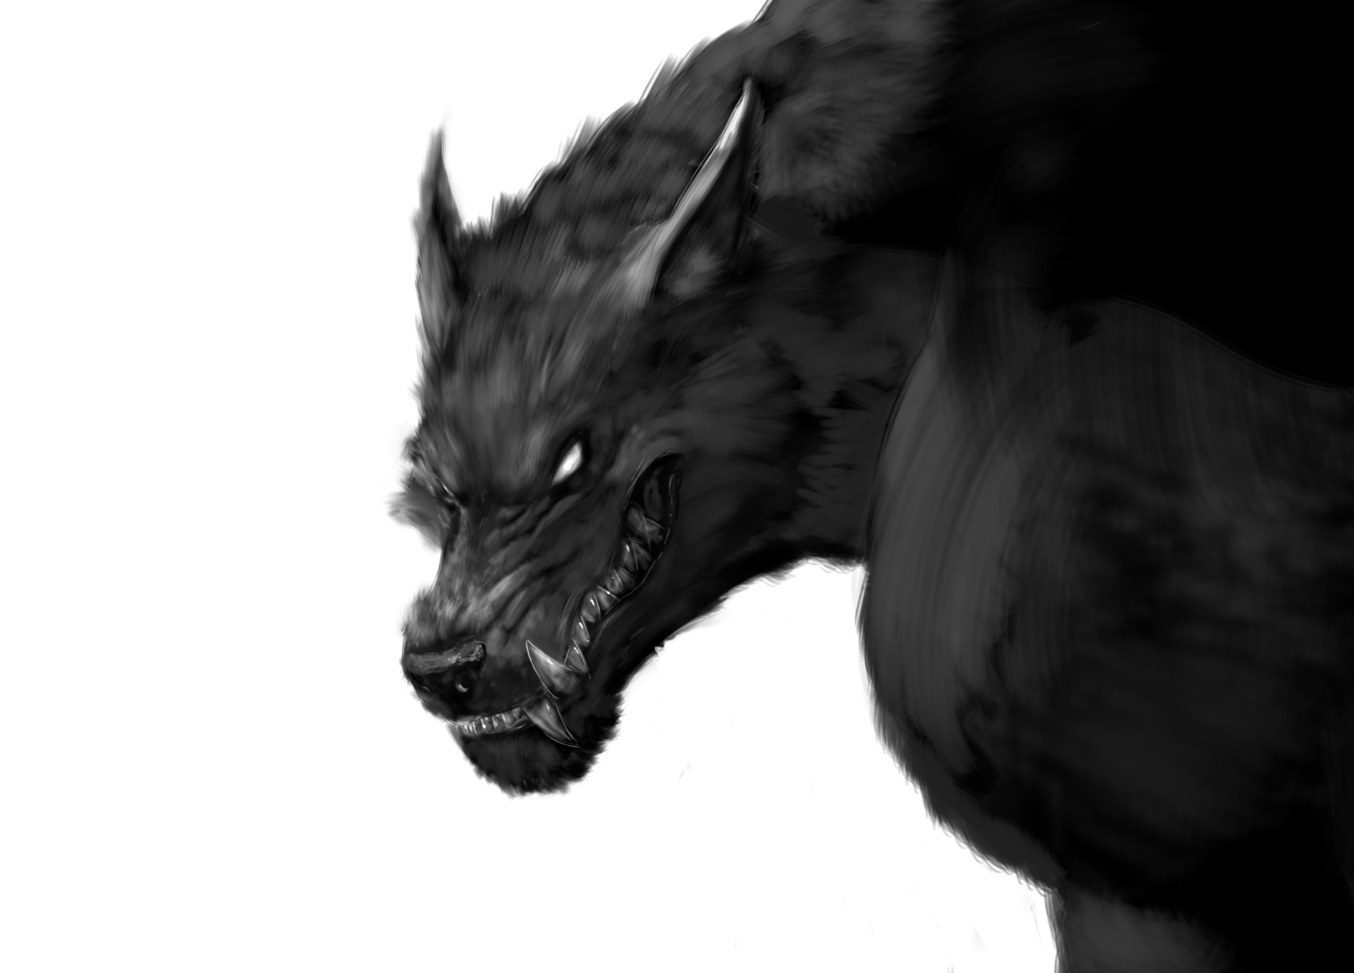 Scary werewolf head black white sketch a really nice drawing